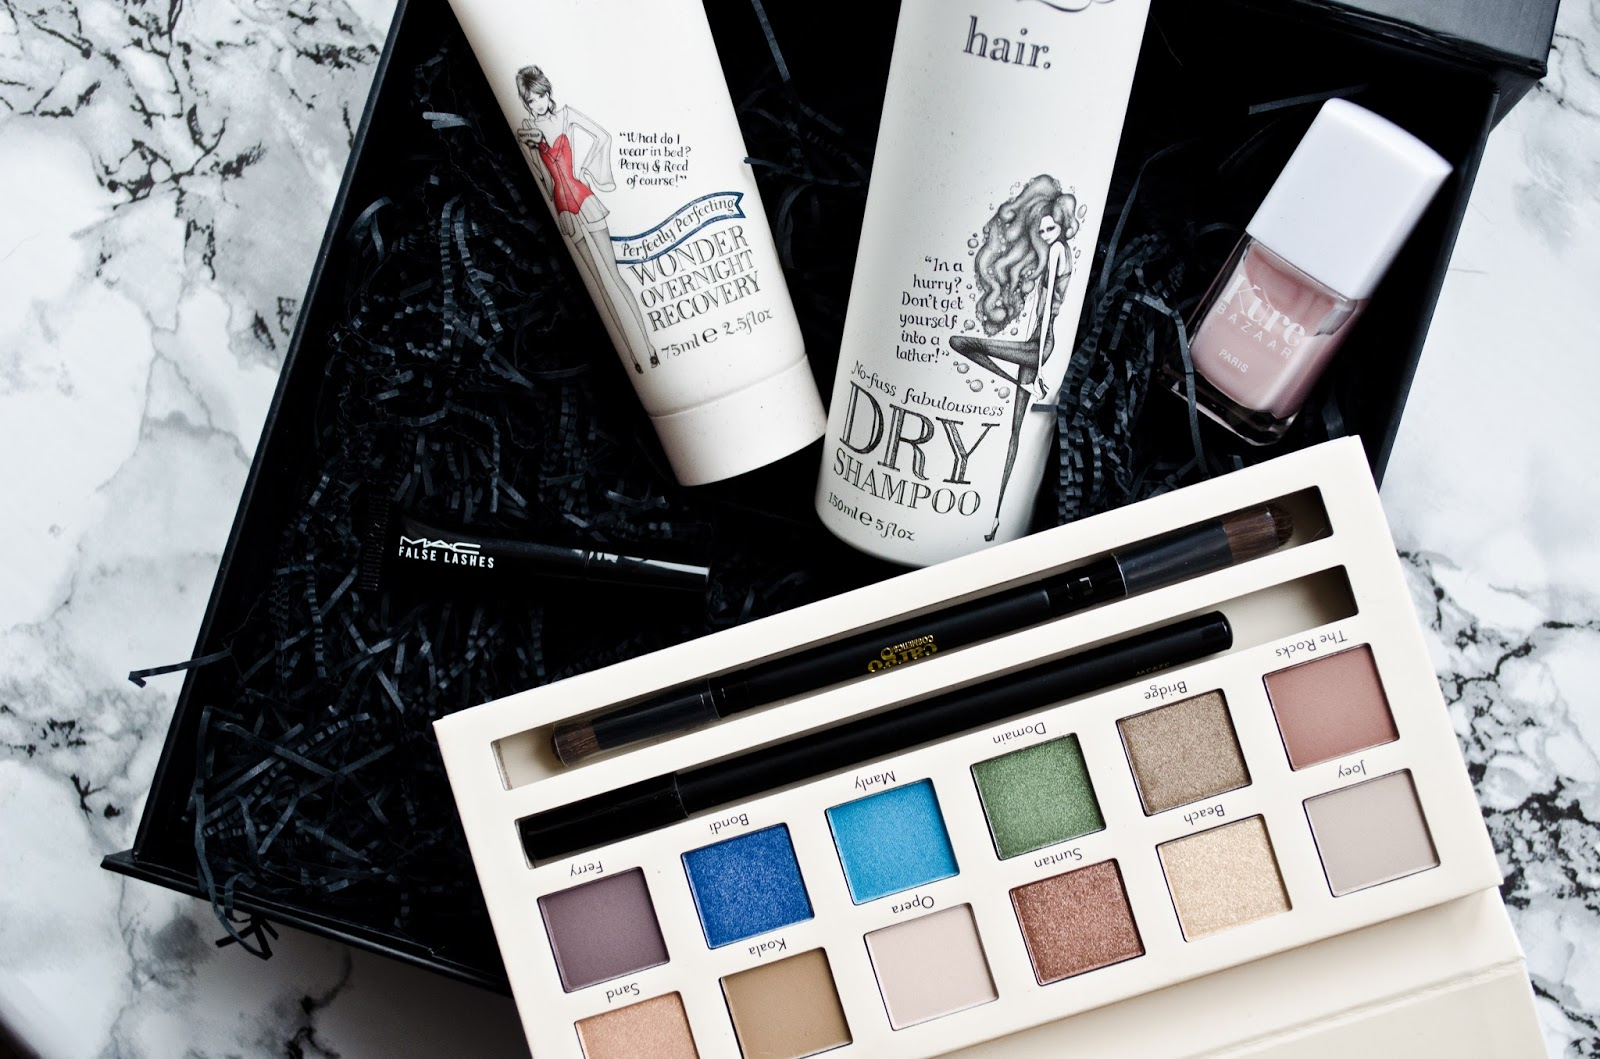 UNBOXING: Cohorted Beauty Box September Edition